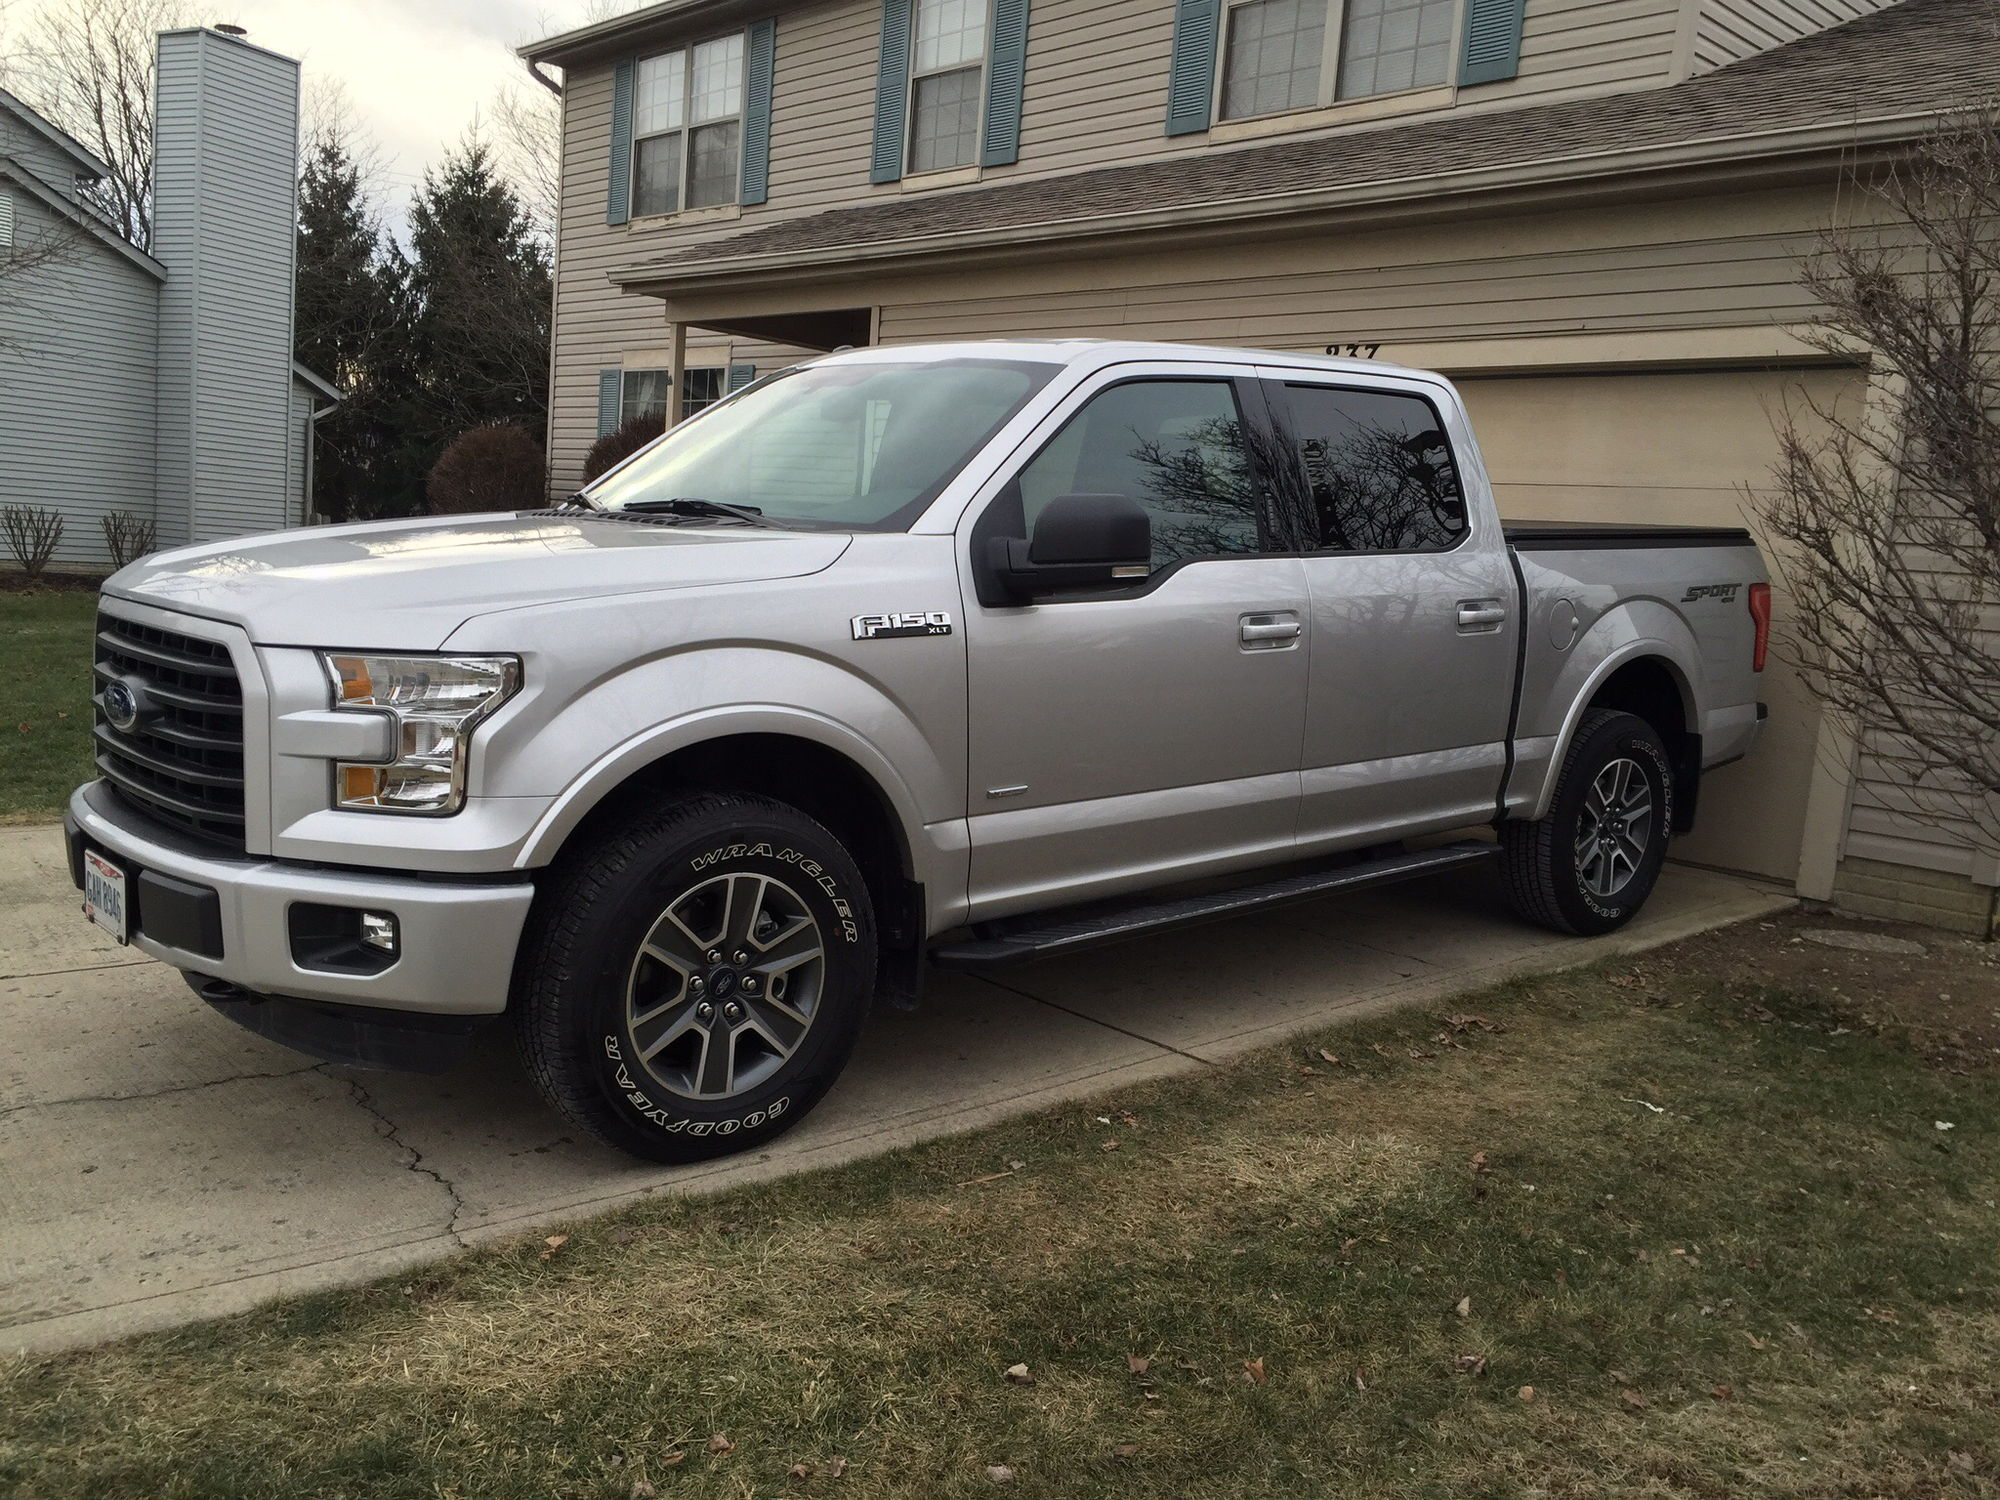 2016 F150 Tonneau Cover >> Let's see those Ingot Silver trucks - Page 6 - Ford F150 Forum - Community of Ford Truck Fans